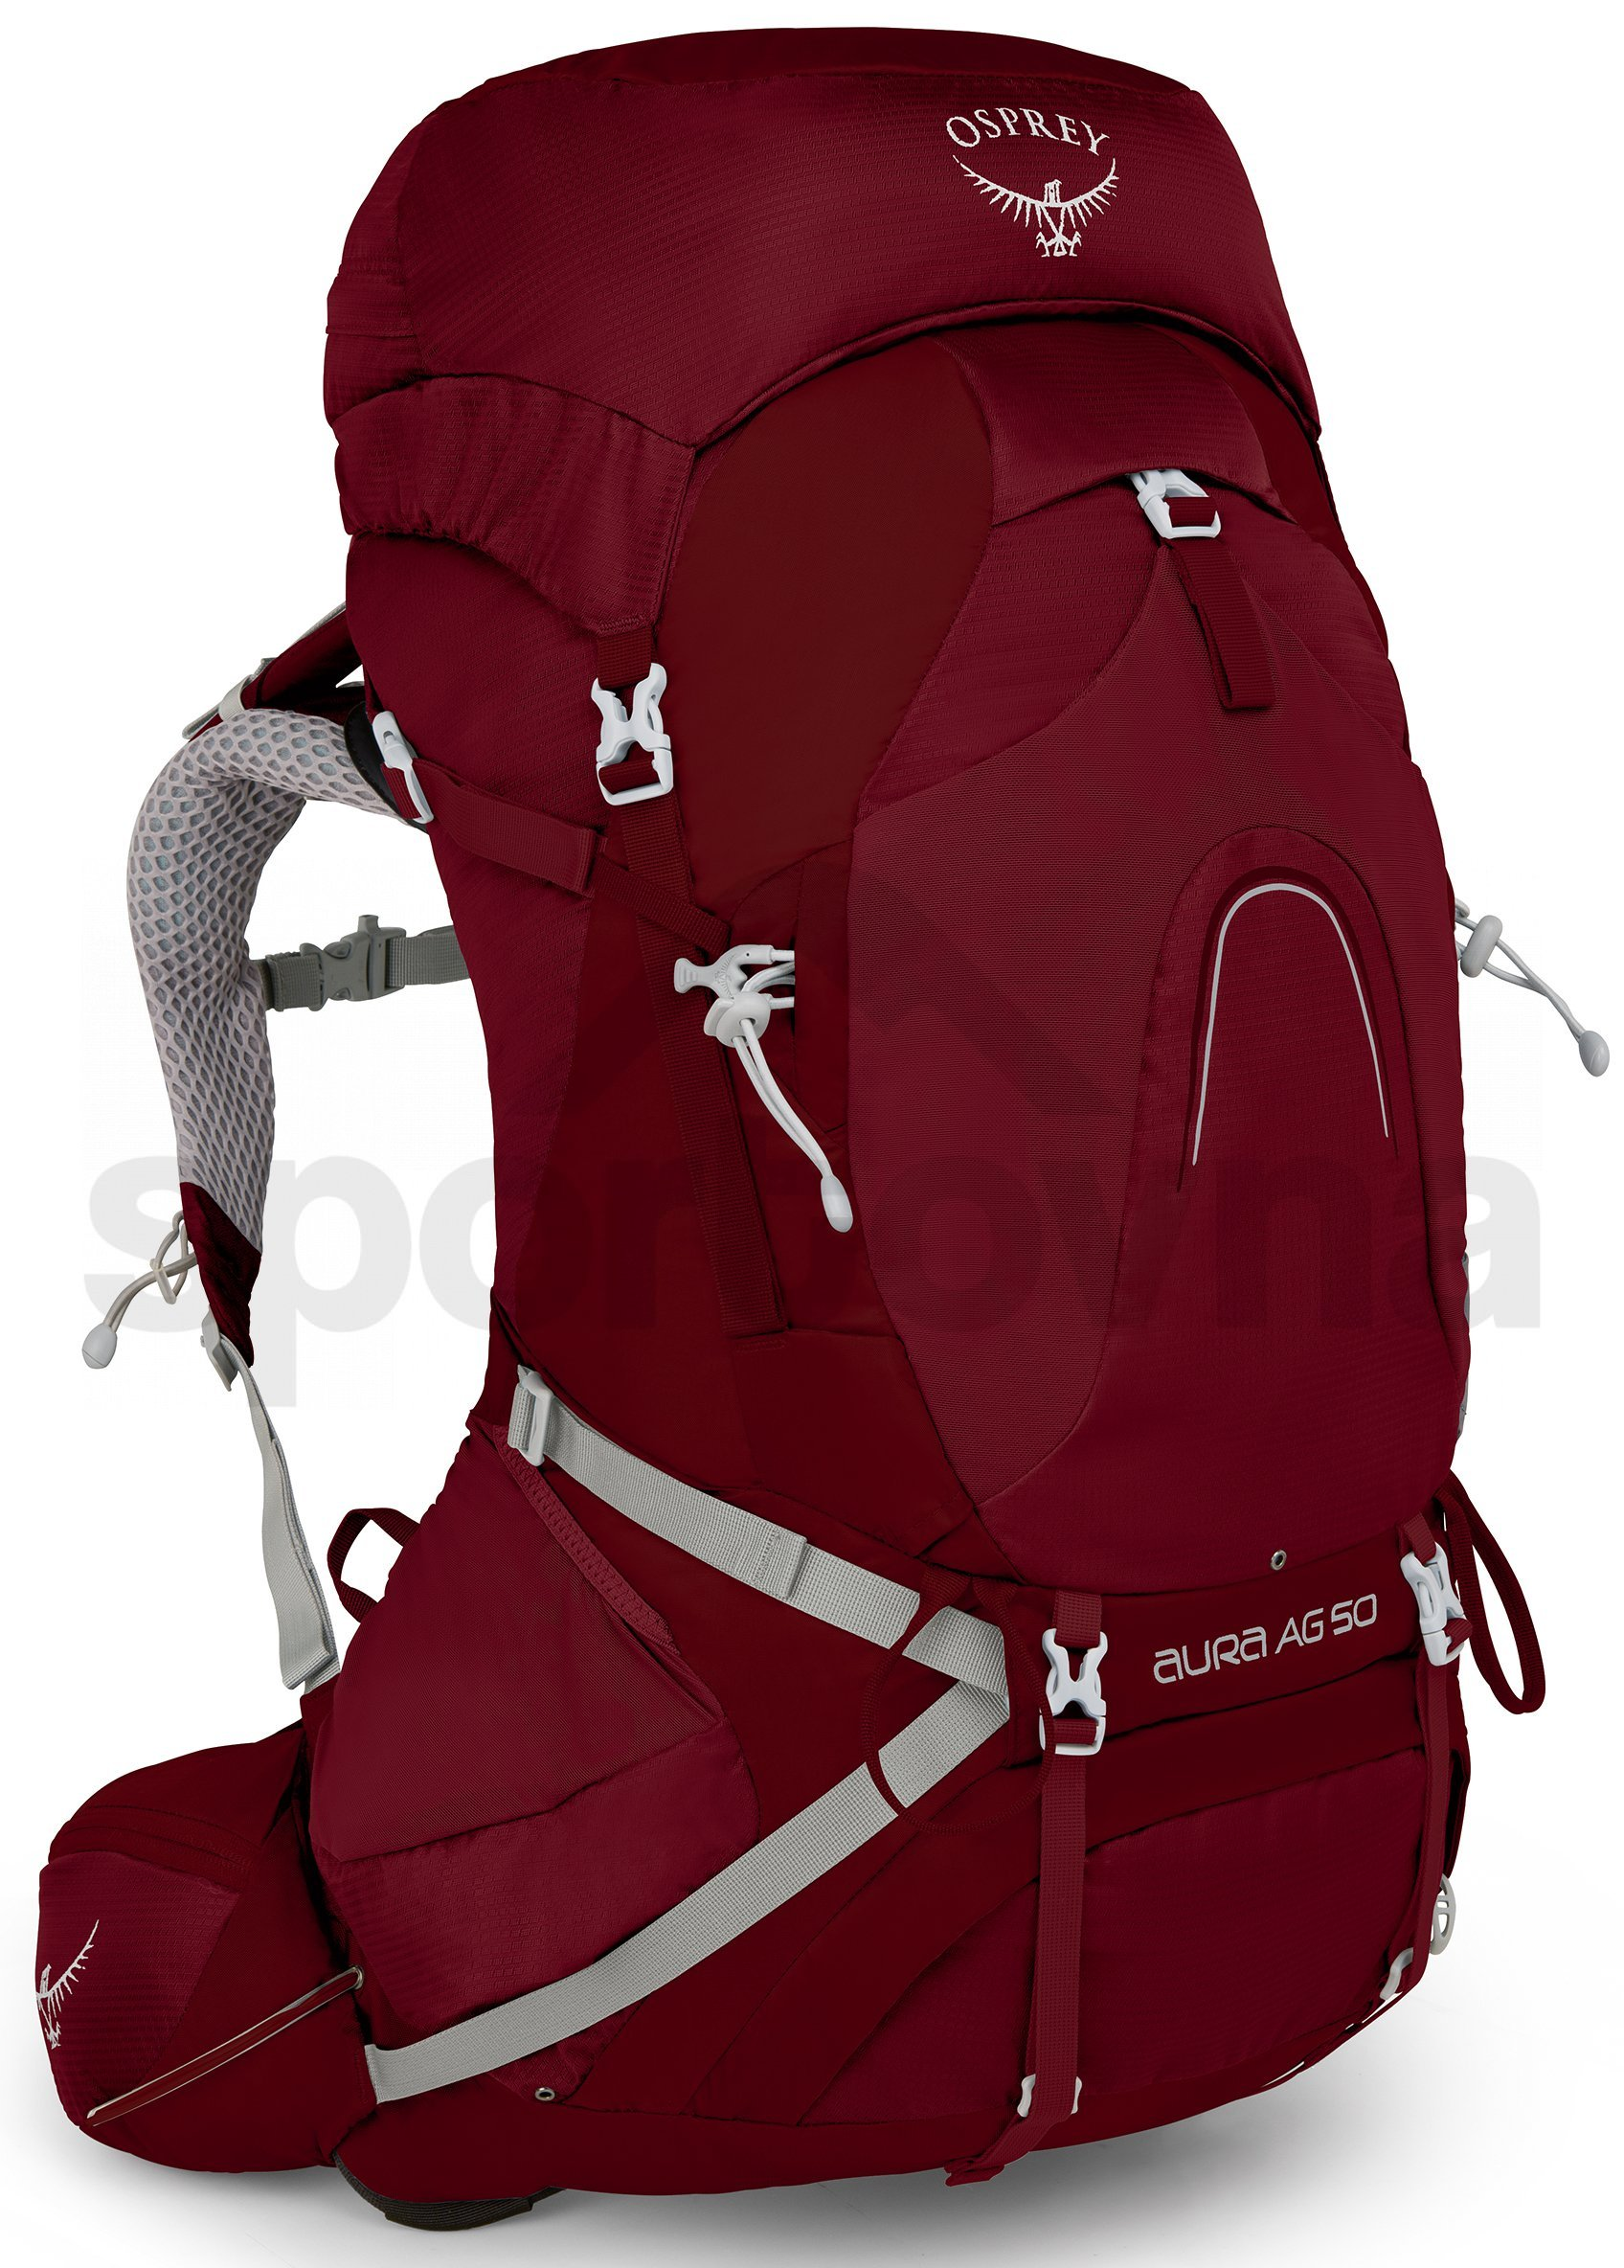 aura-ag-50-s18-side-gamma-red